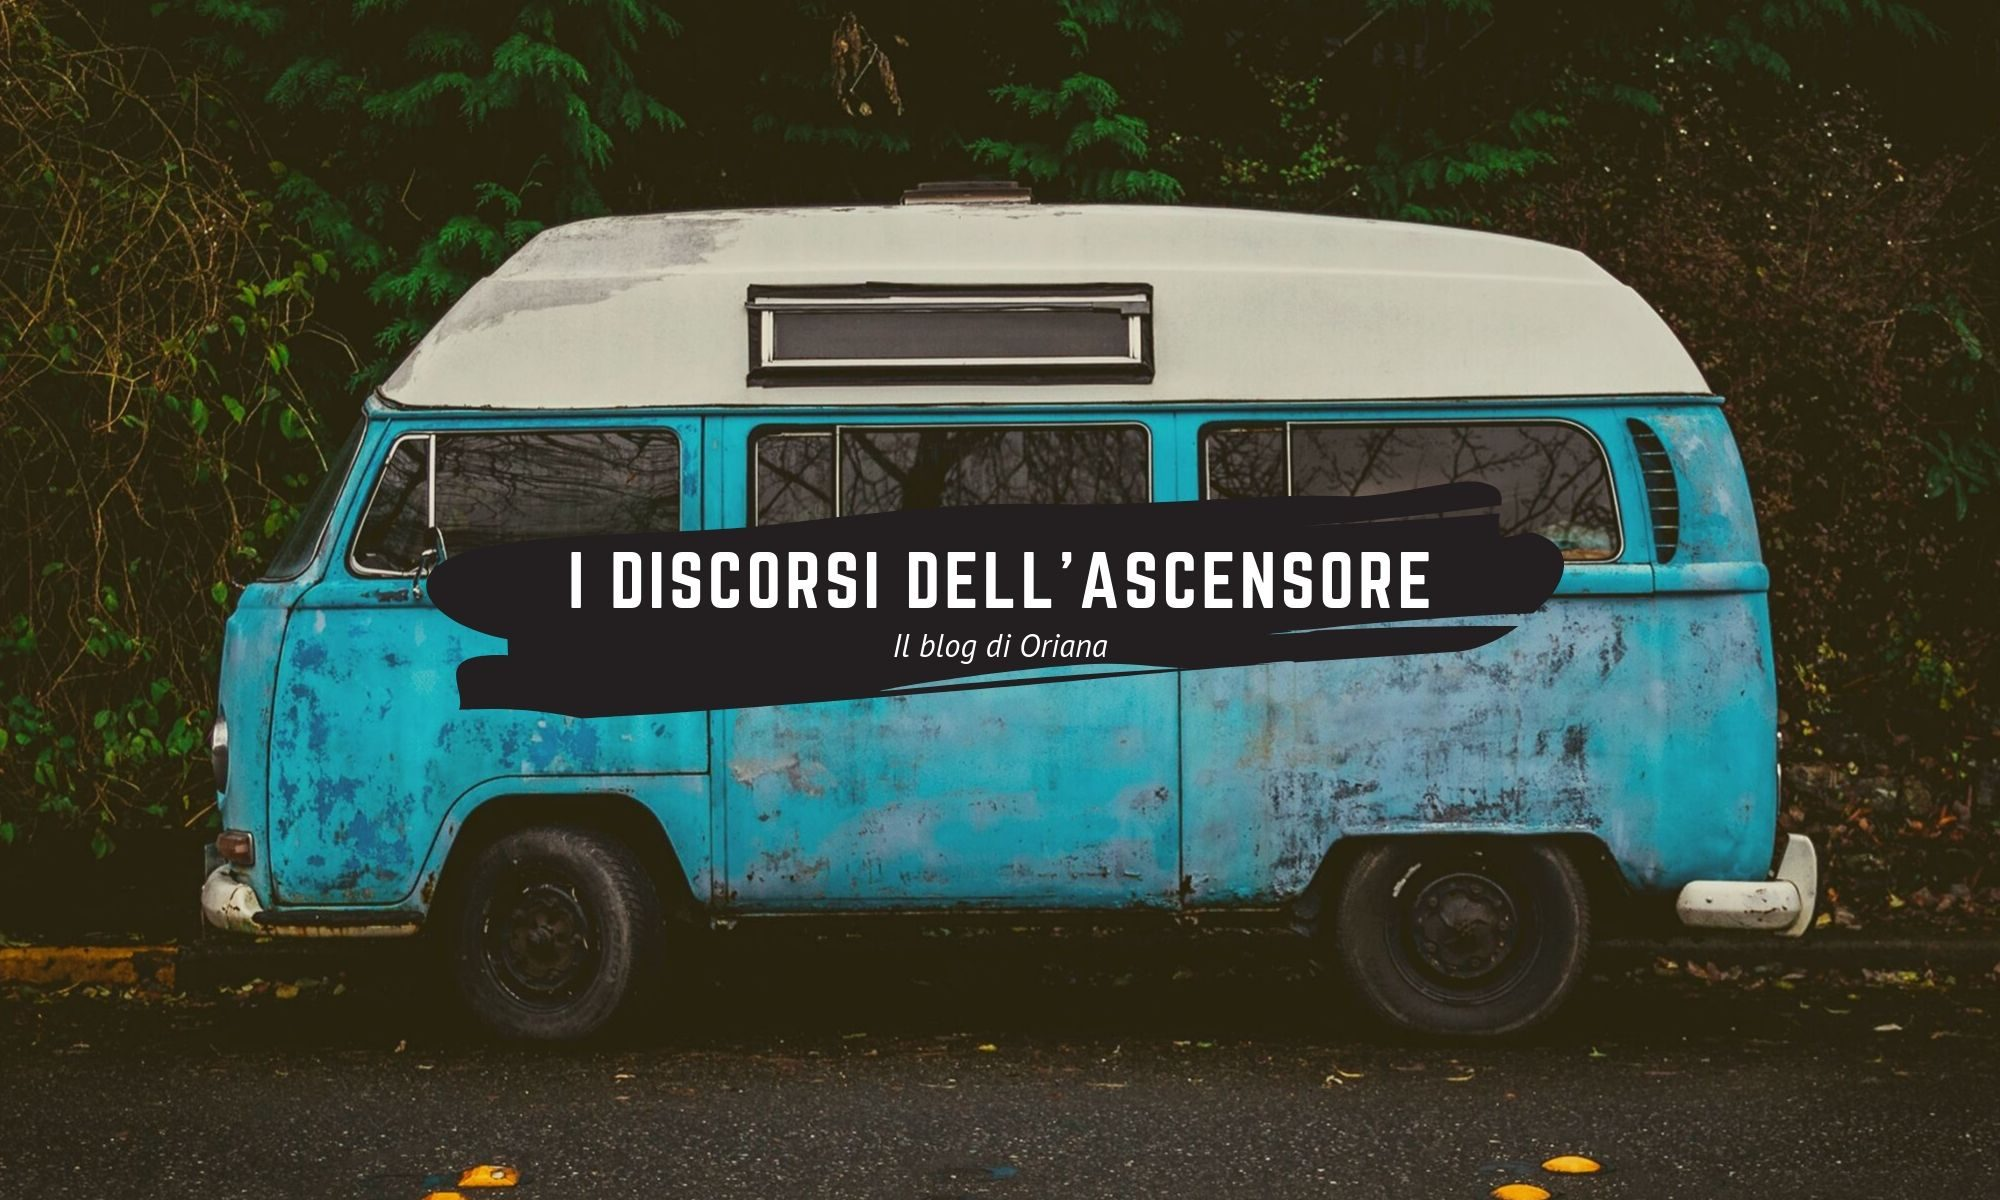 I discorsi dell'ascensore